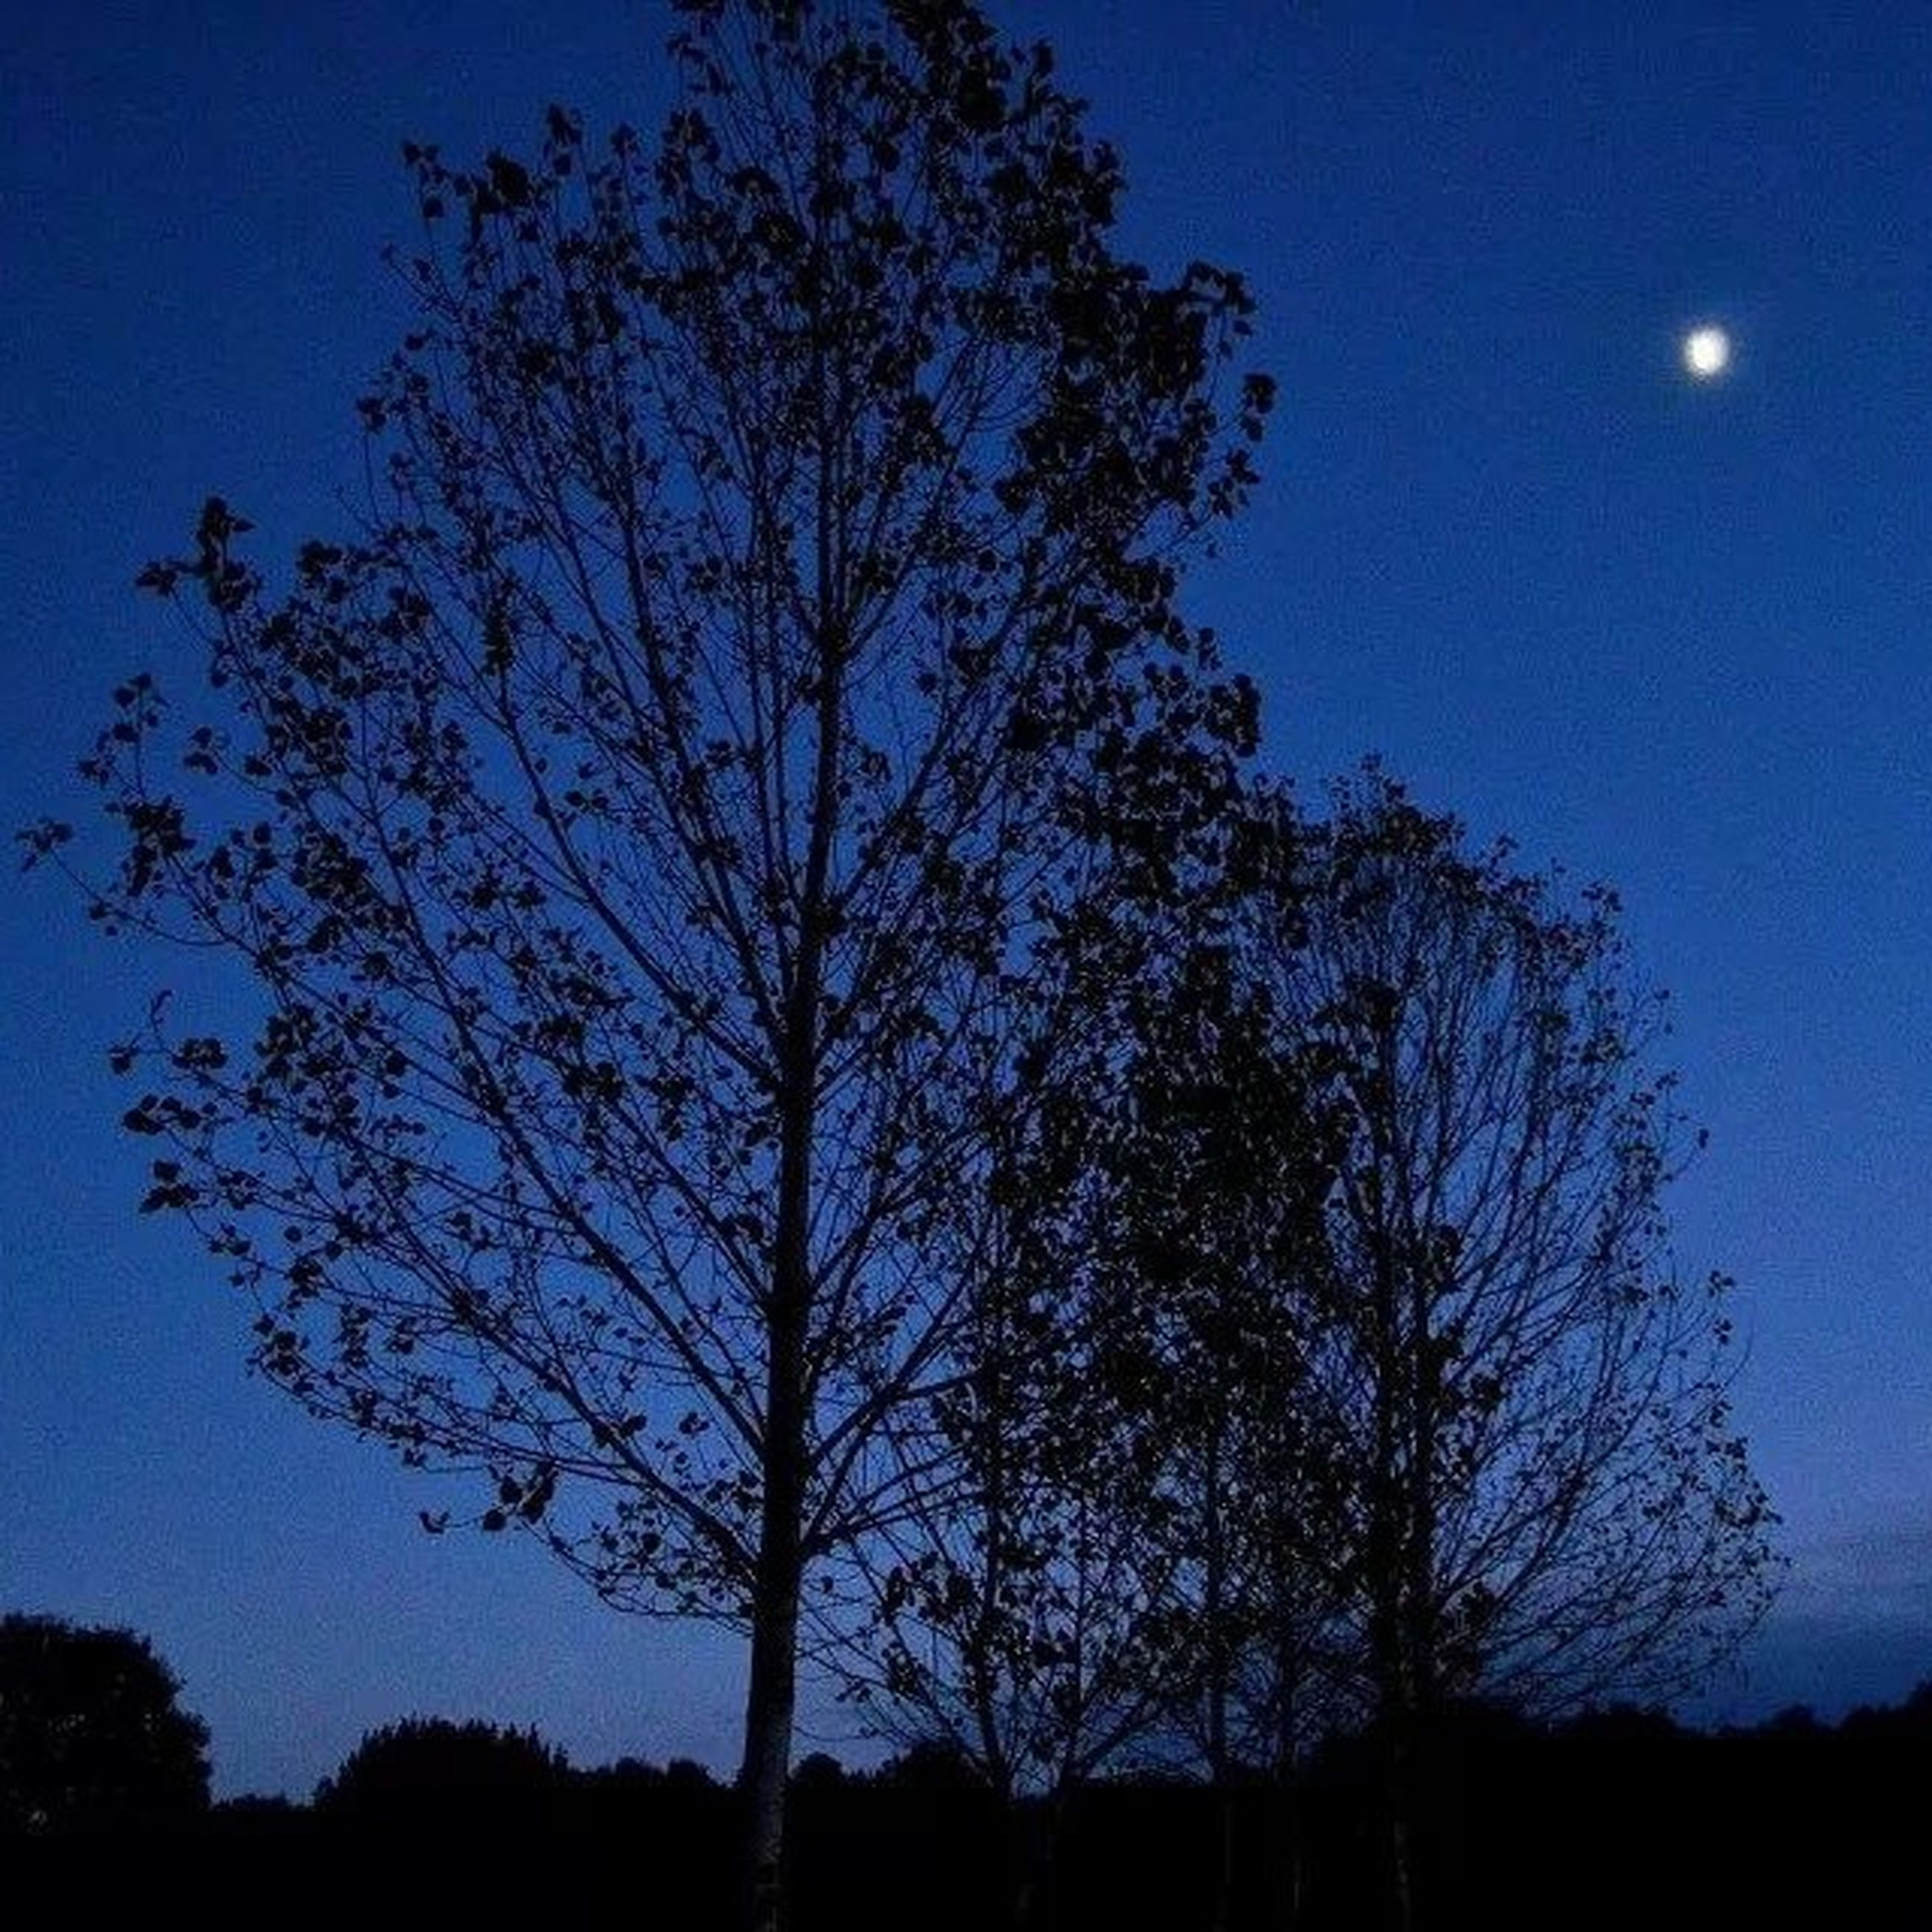 silhouette, tree, low angle view, tranquility, beauty in nature, blue, tranquil scene, moon, scenics, sky, nature, night, clear sky, bare tree, branch, dusk, idyllic, dark, growth, outdoors